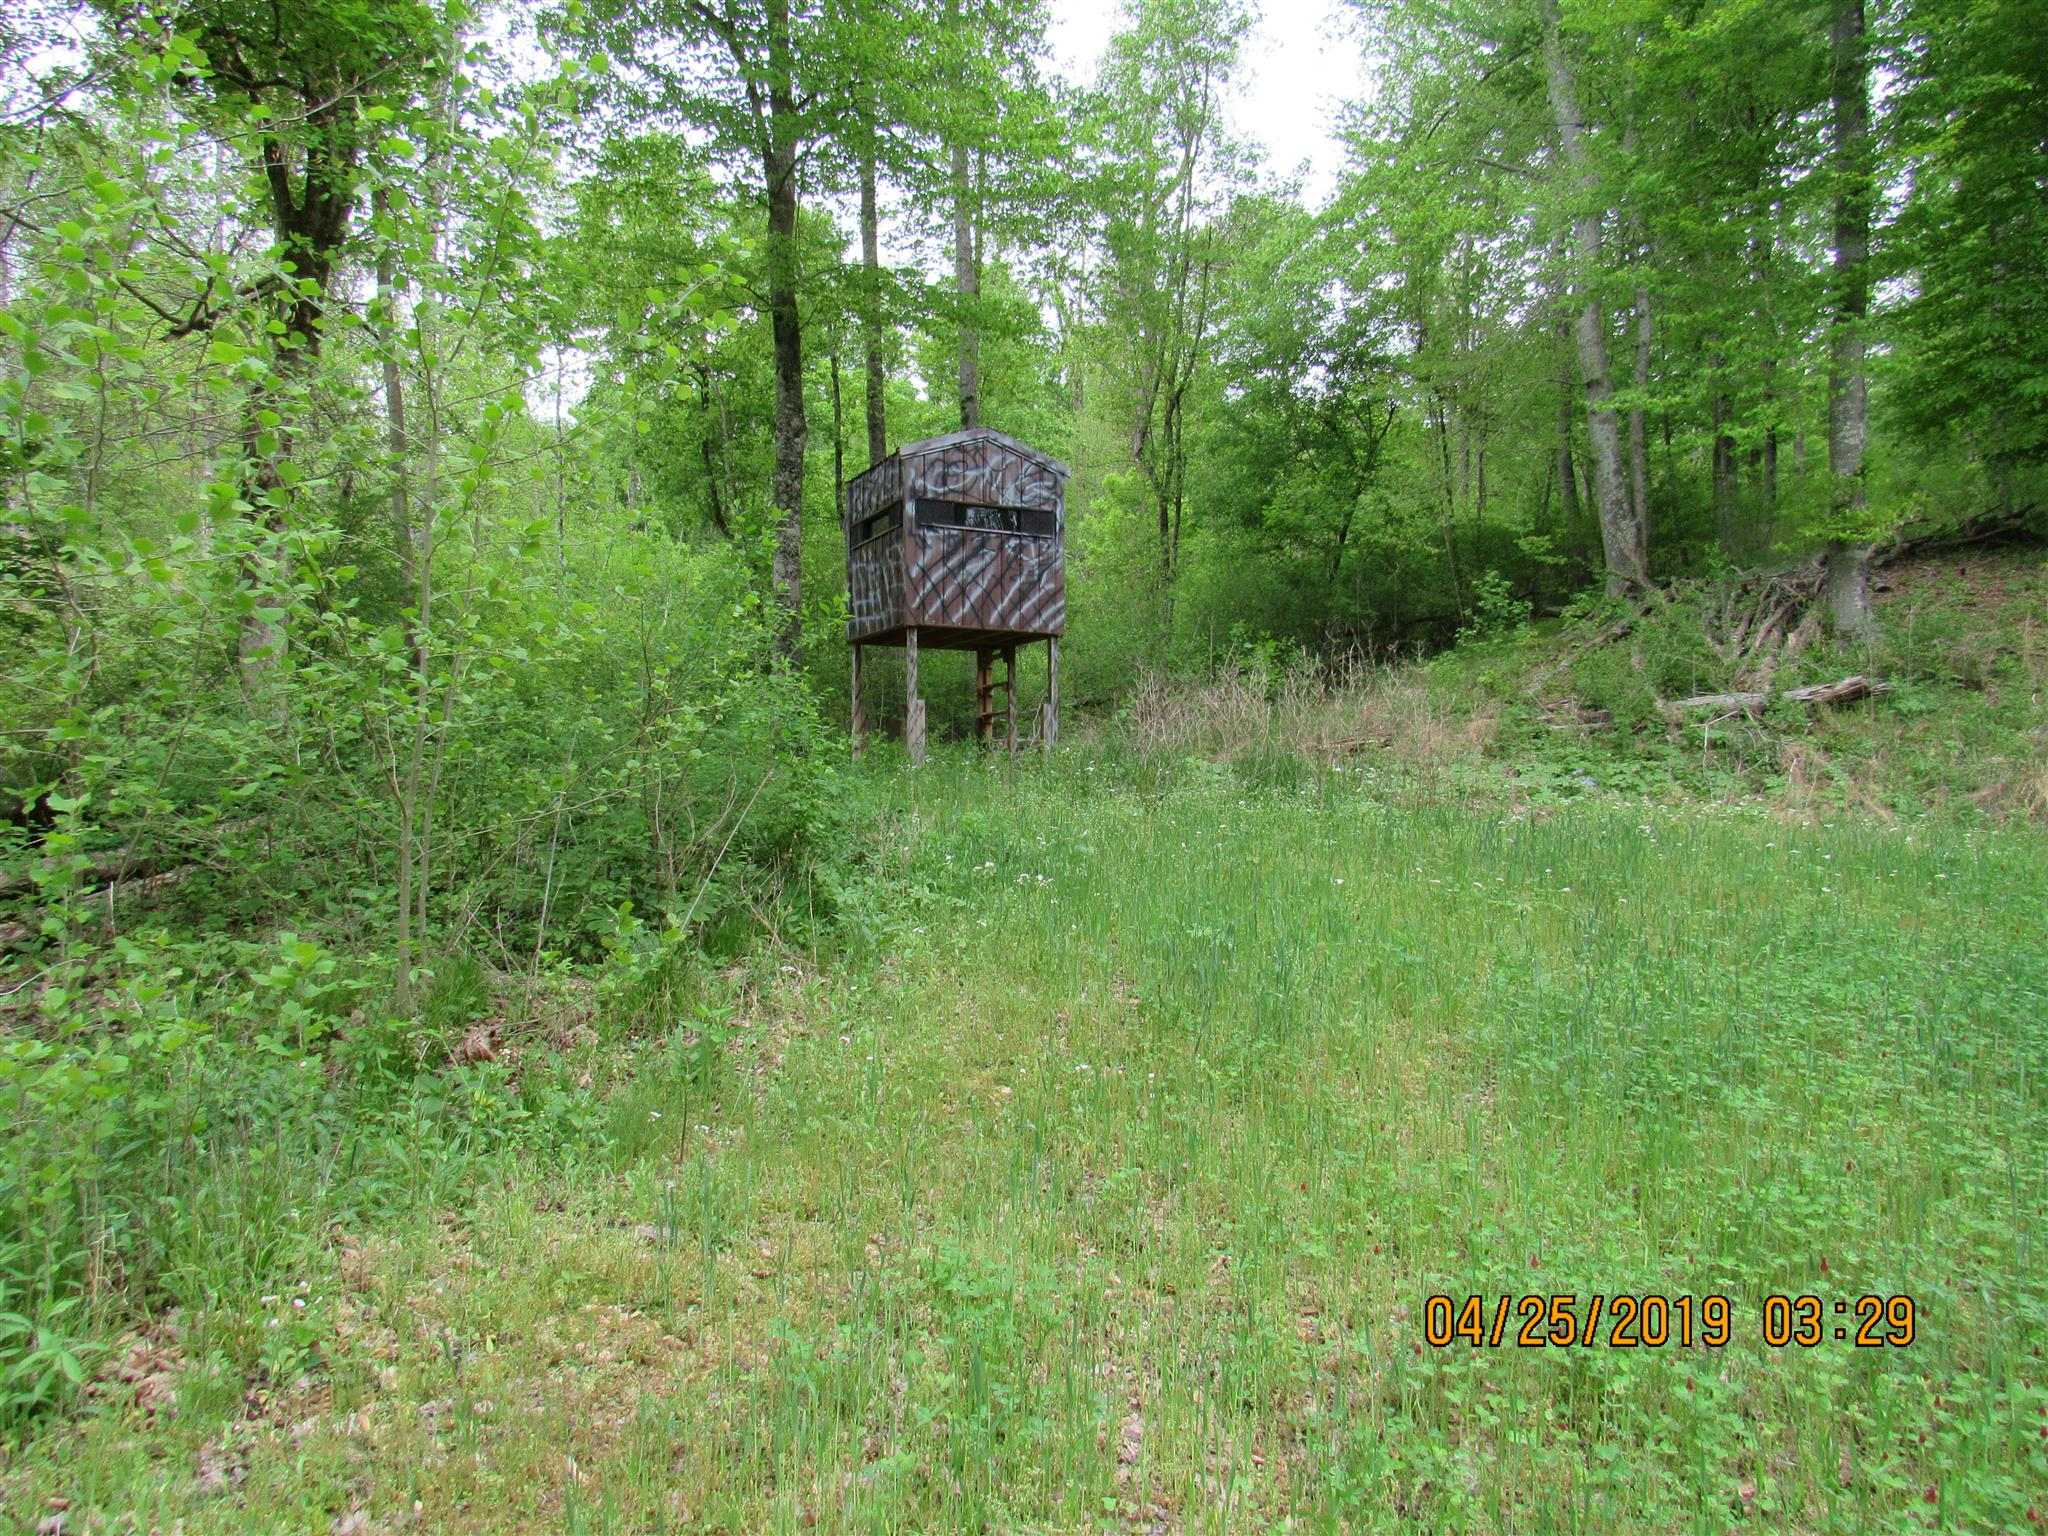 0 E Blue Ck Rd, MC EWEN, TN 37101 - MC EWEN, TN real estate listing